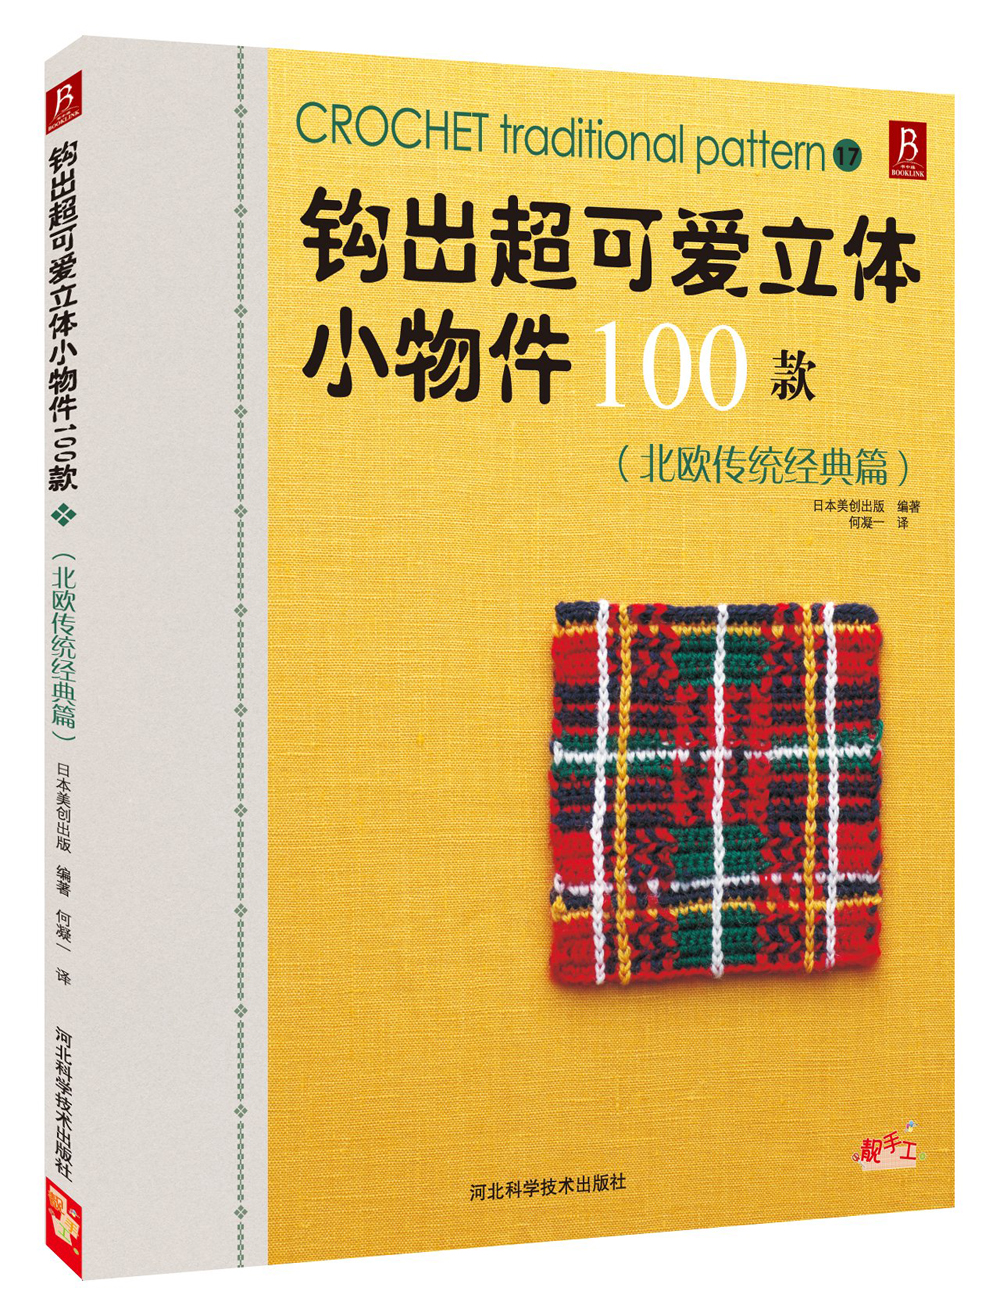 Crochet Traditional Pattern Decoration Weaving Super-cute 3d Small Objects 100 Models Chinese Knitting Book